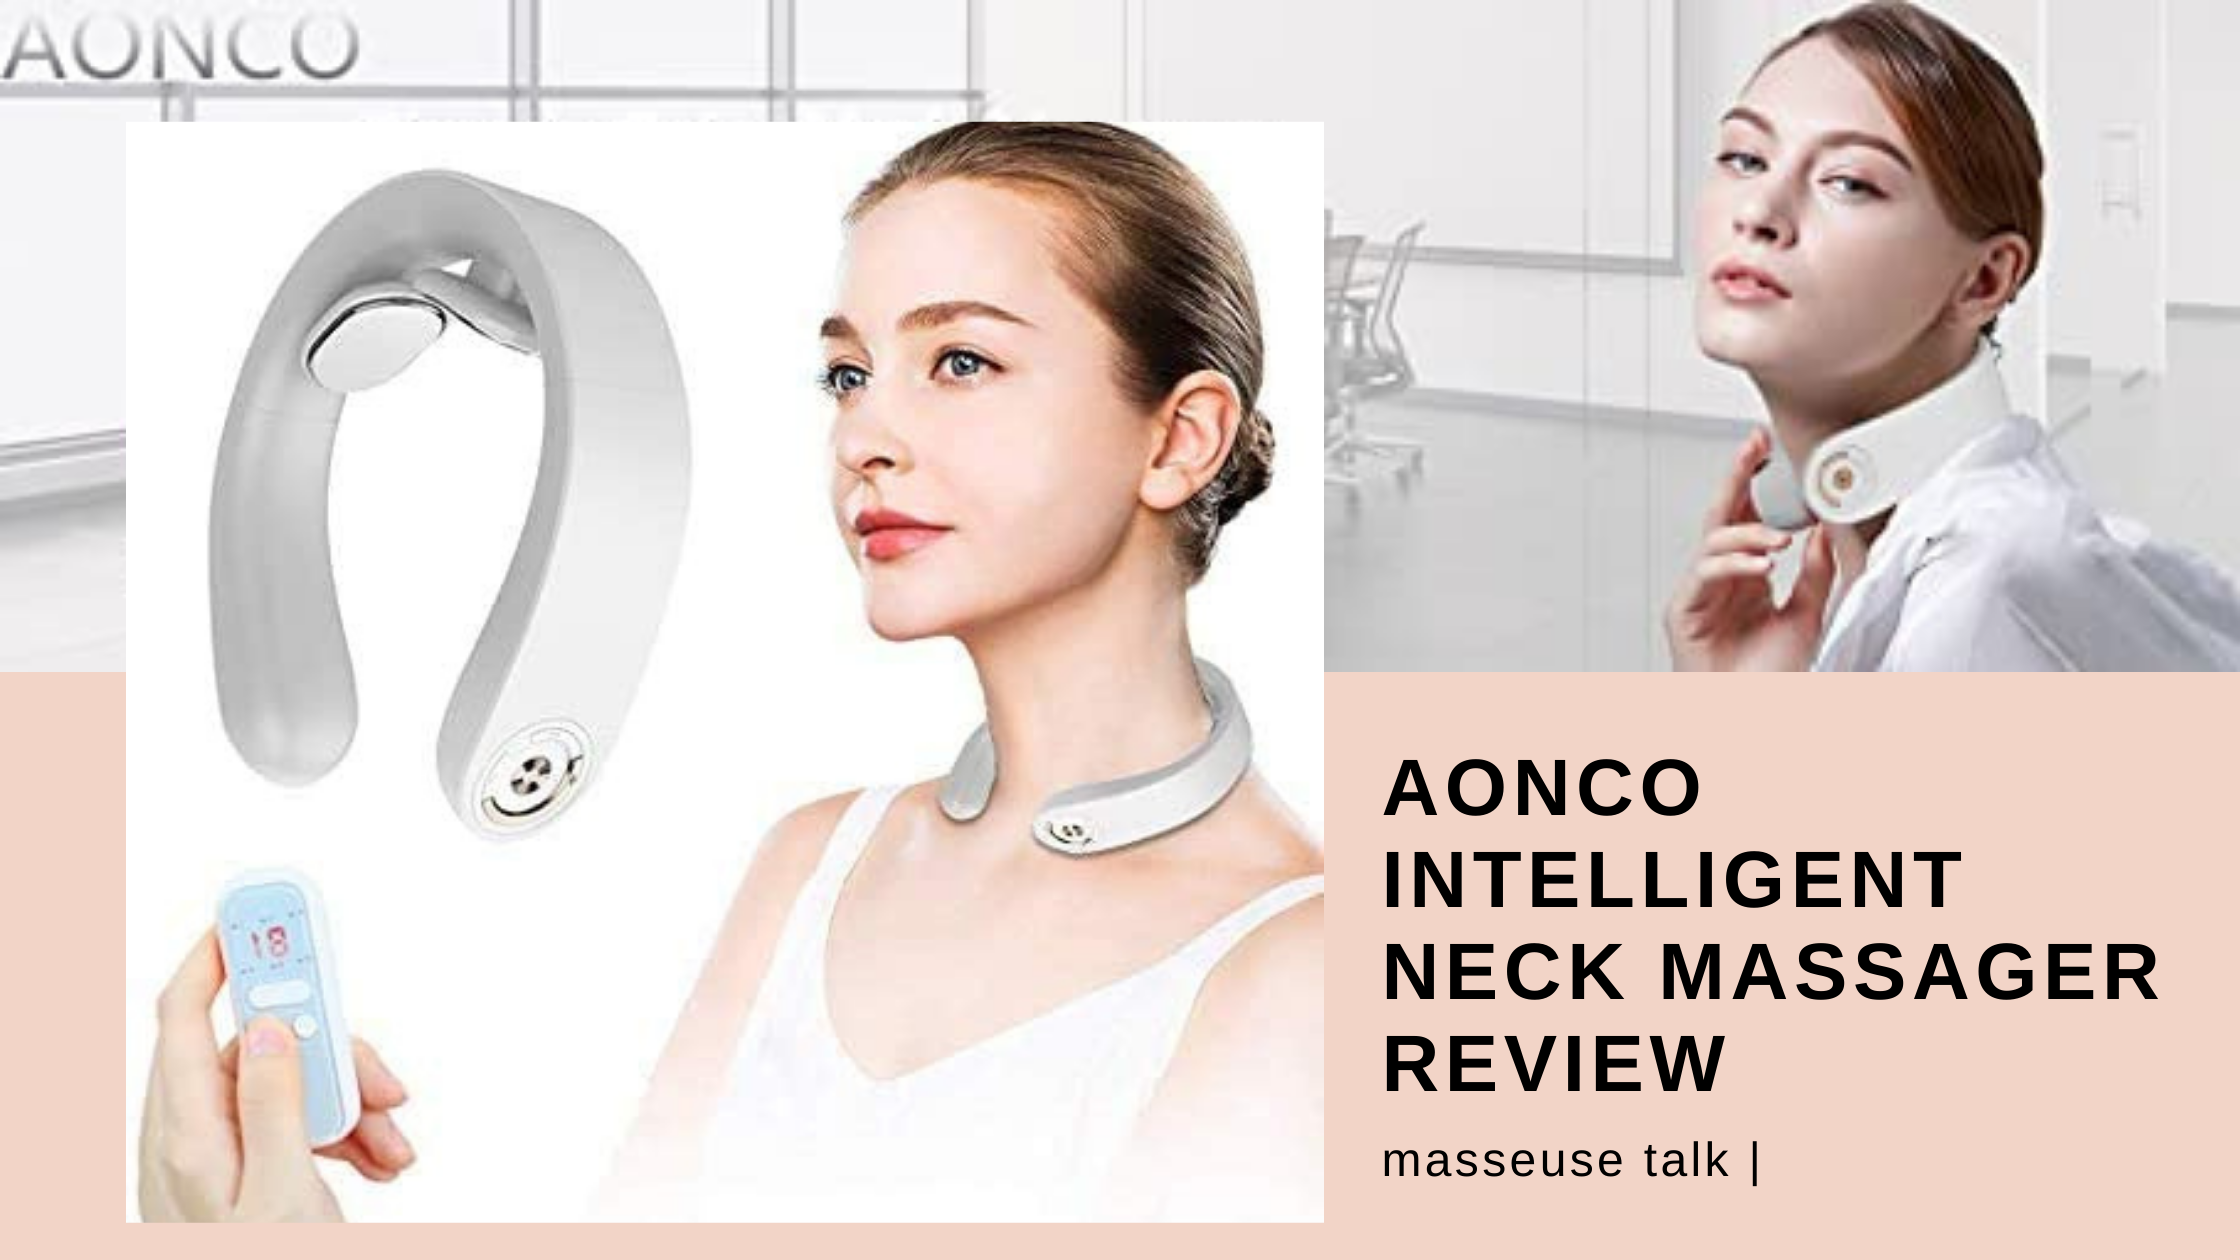 AONCO Intelligent Neck Massager